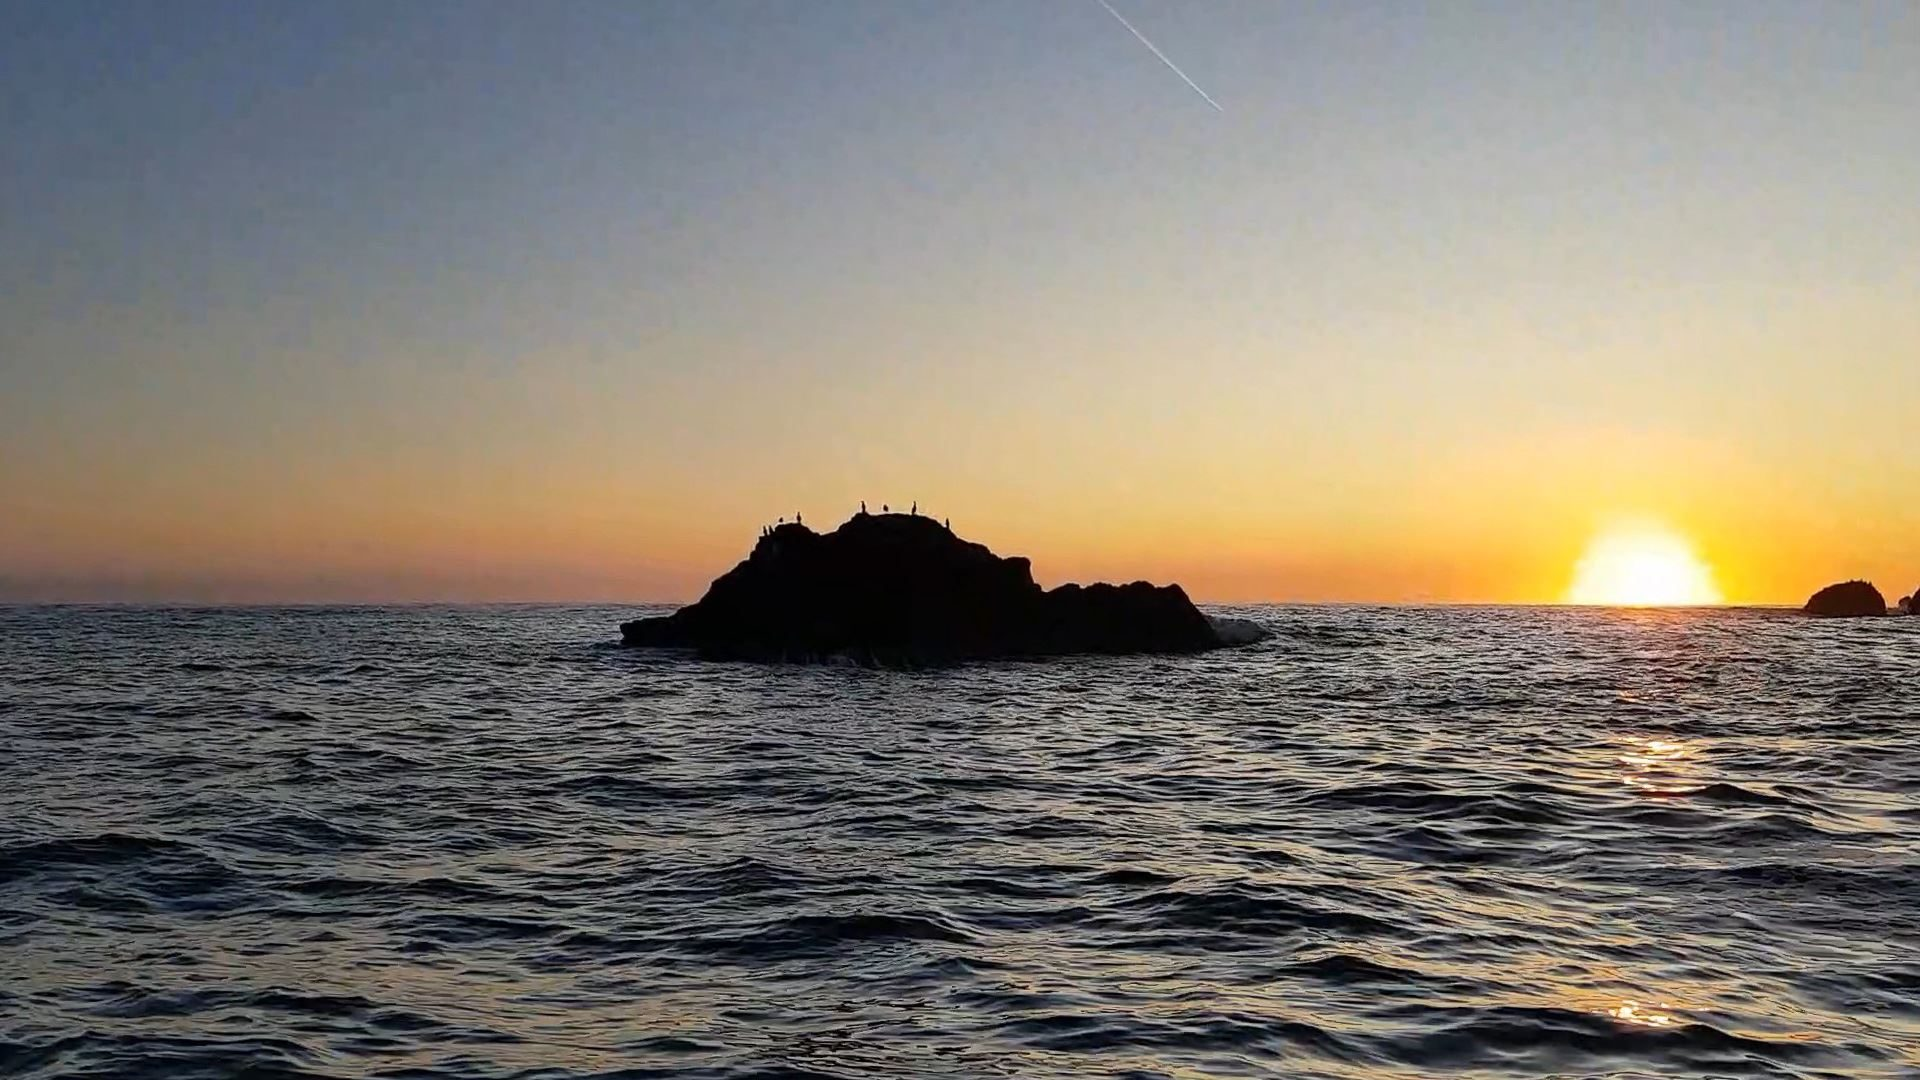 The sun is just appearing above the horizon as I pass the Yett rocks which line the approach to Dunbar harbour